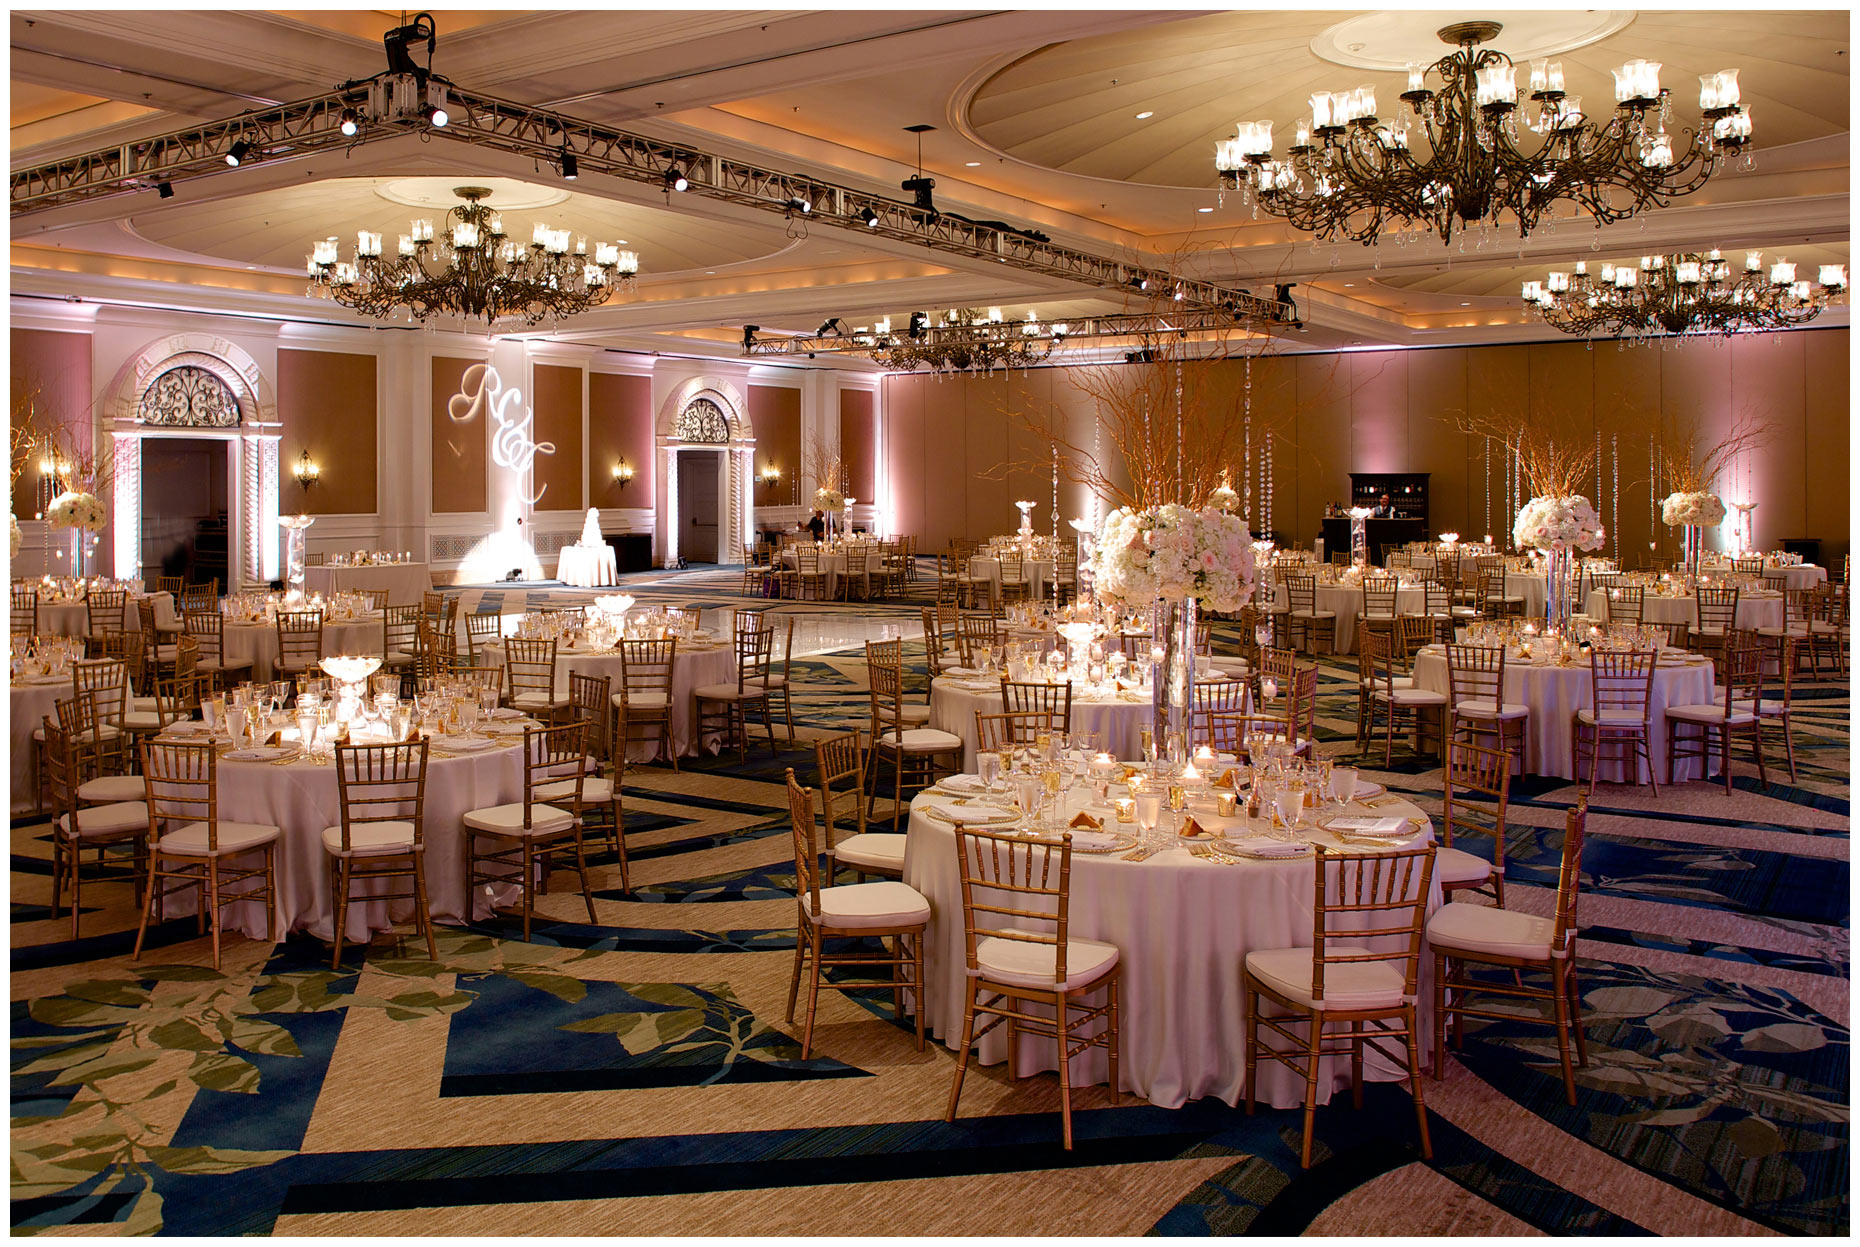 Orlando Ritz-Carlton Wedding